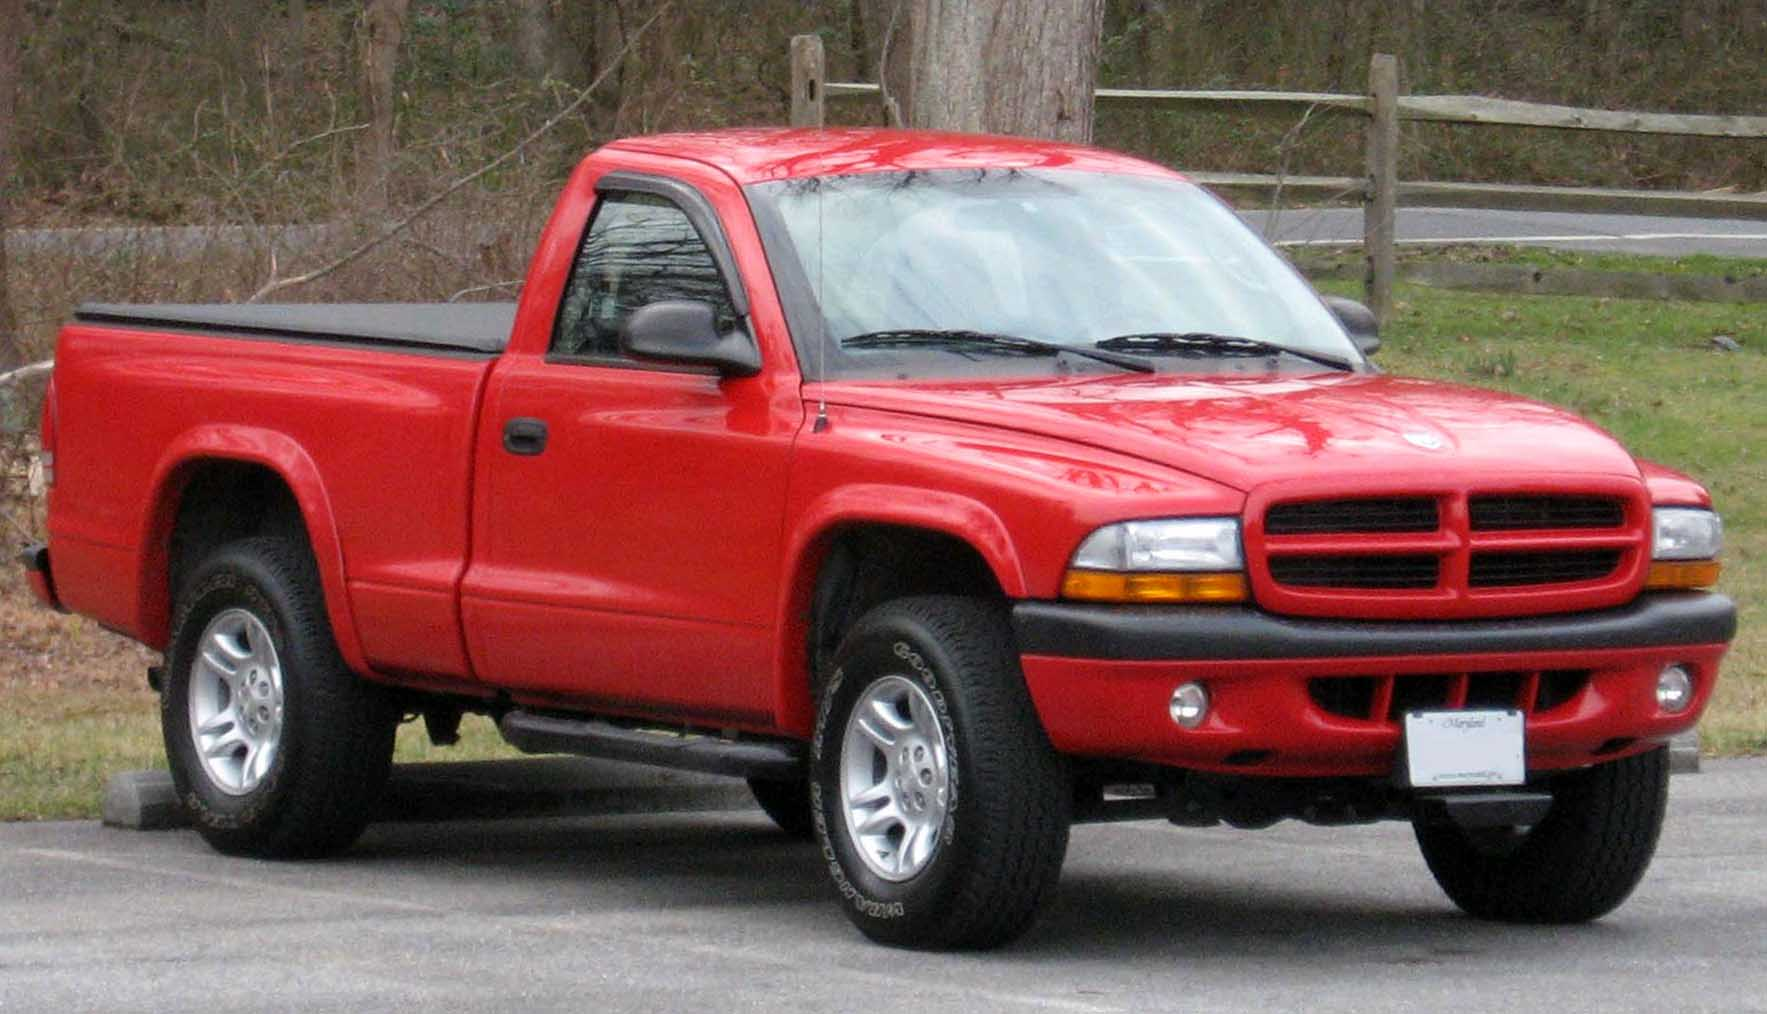 2nd Dodge Dakota High Resolution Image Wallpapers Download